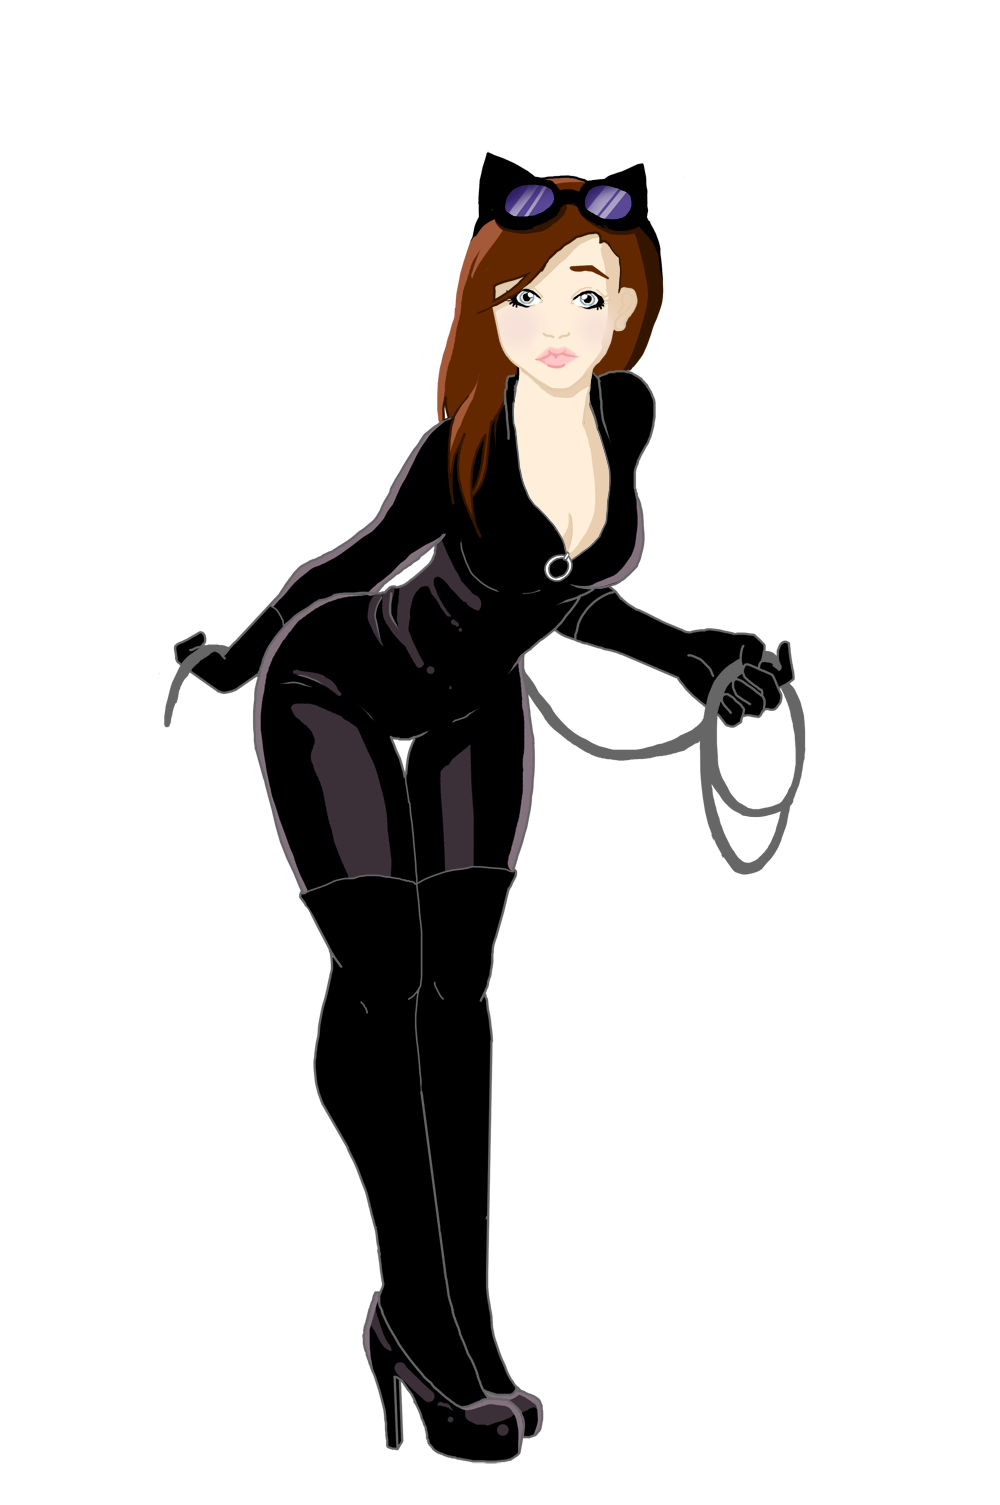 Catwoman, from Batman